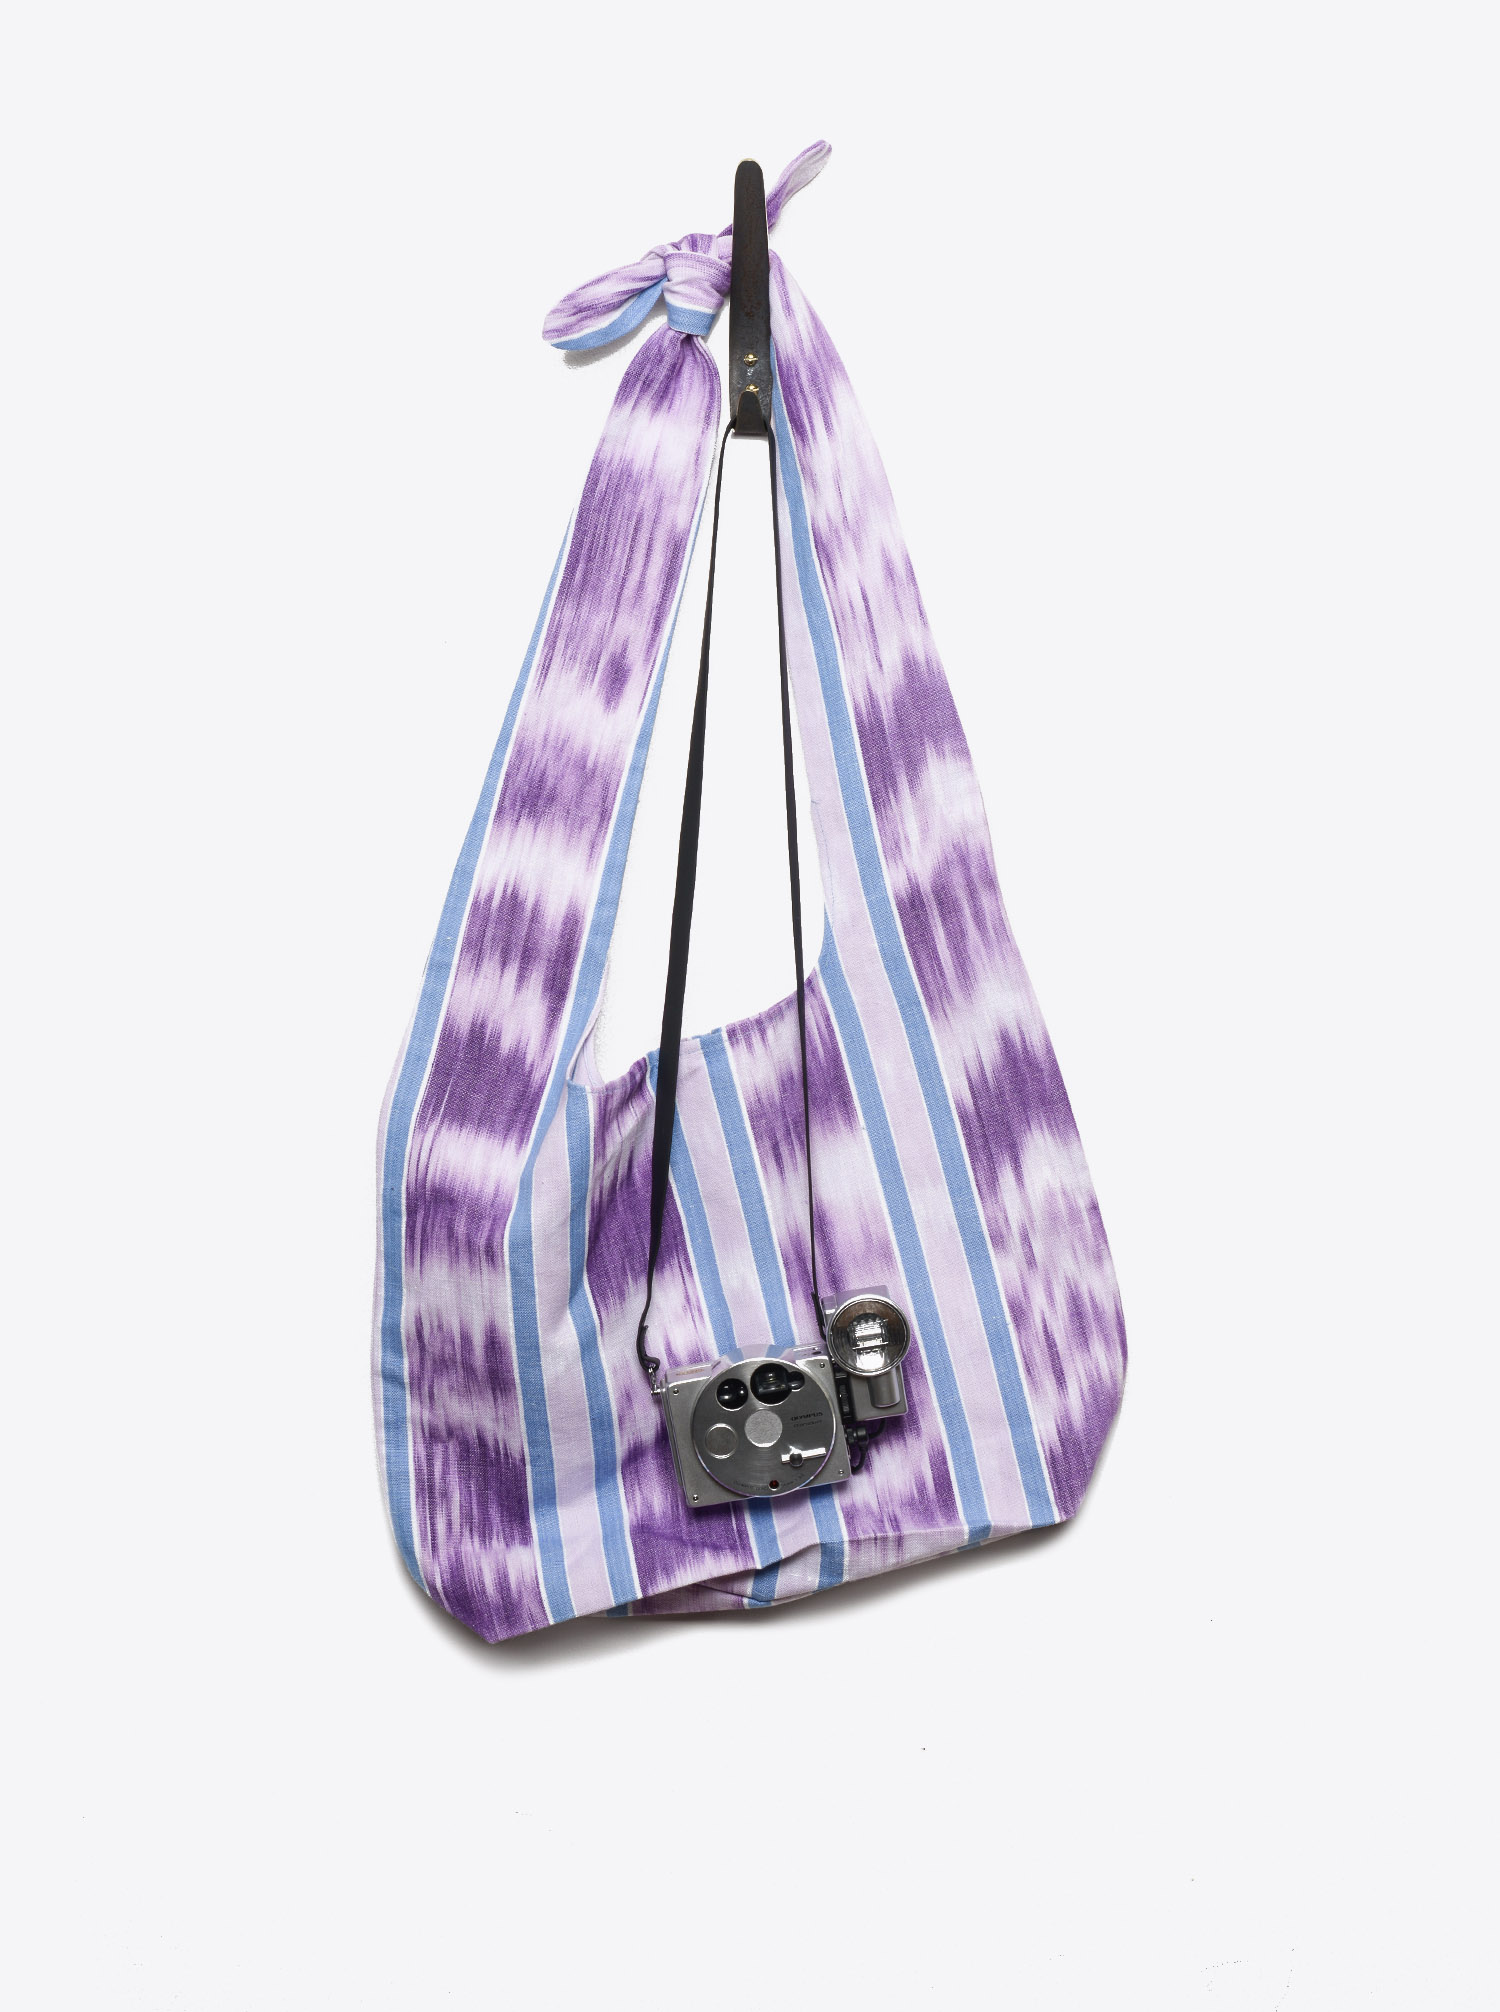 Bag Furoshiki Ikat purple blue